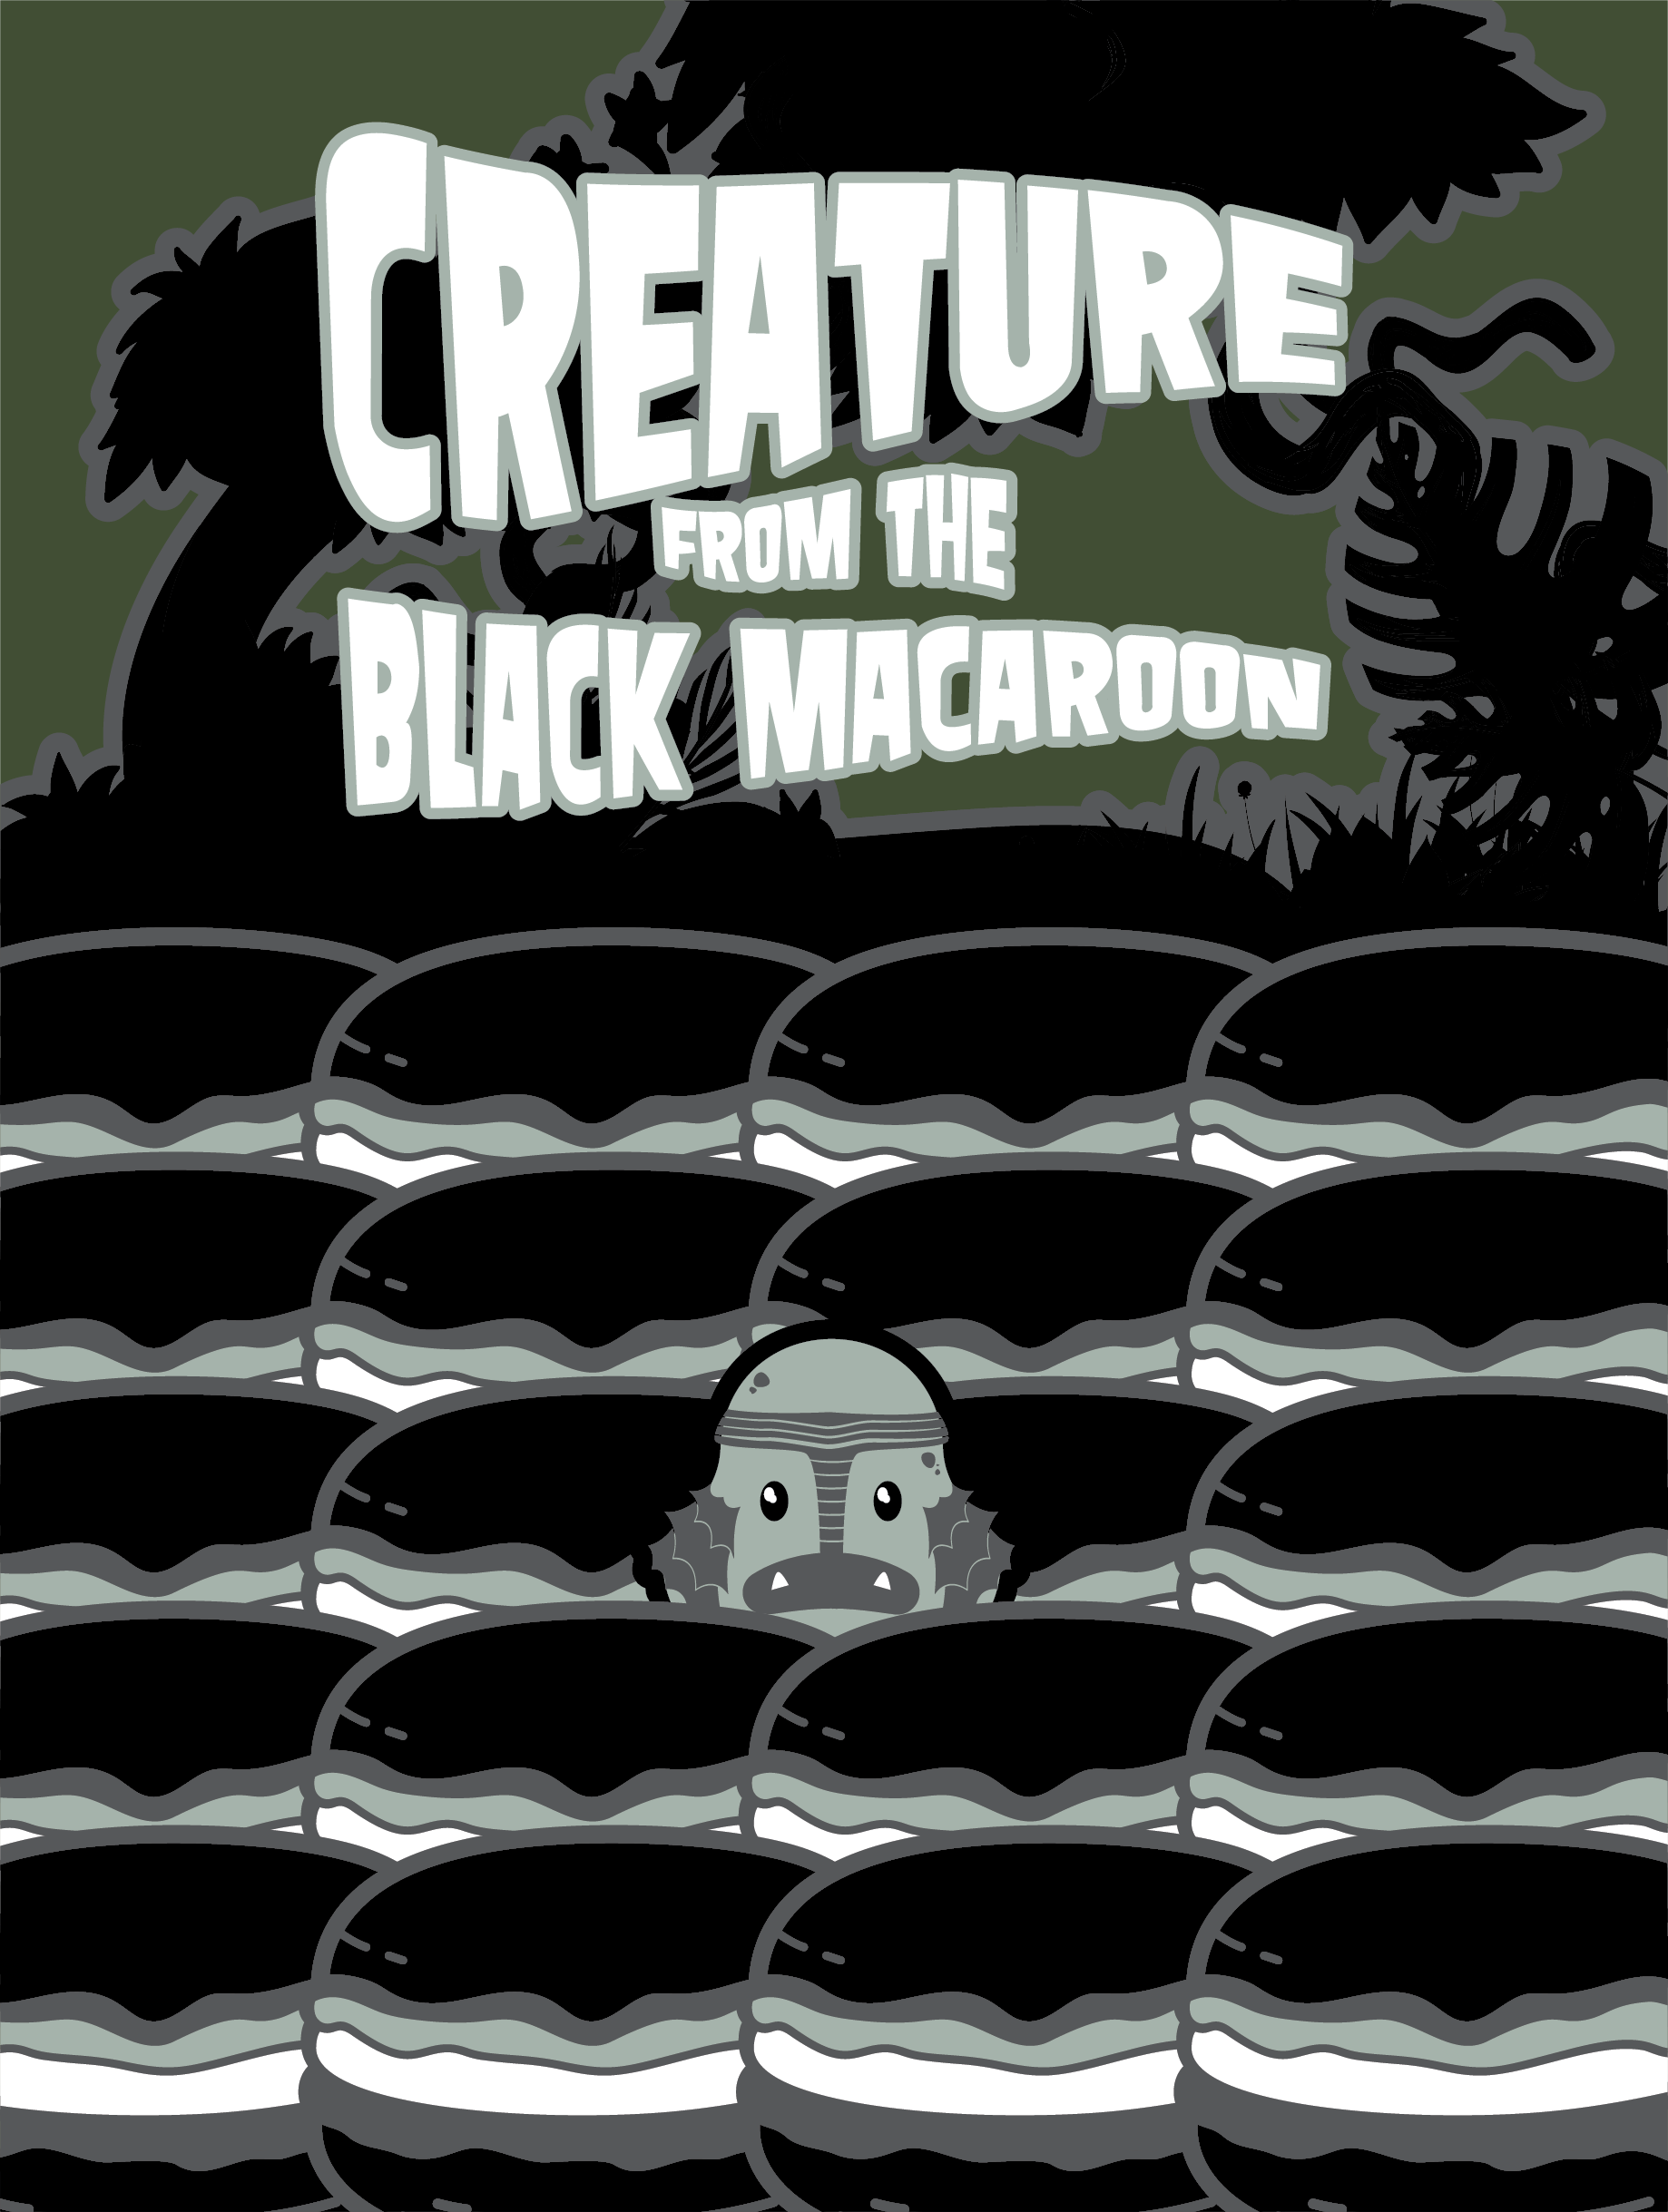 Creature_From_The_Black_Macaroon-01.png